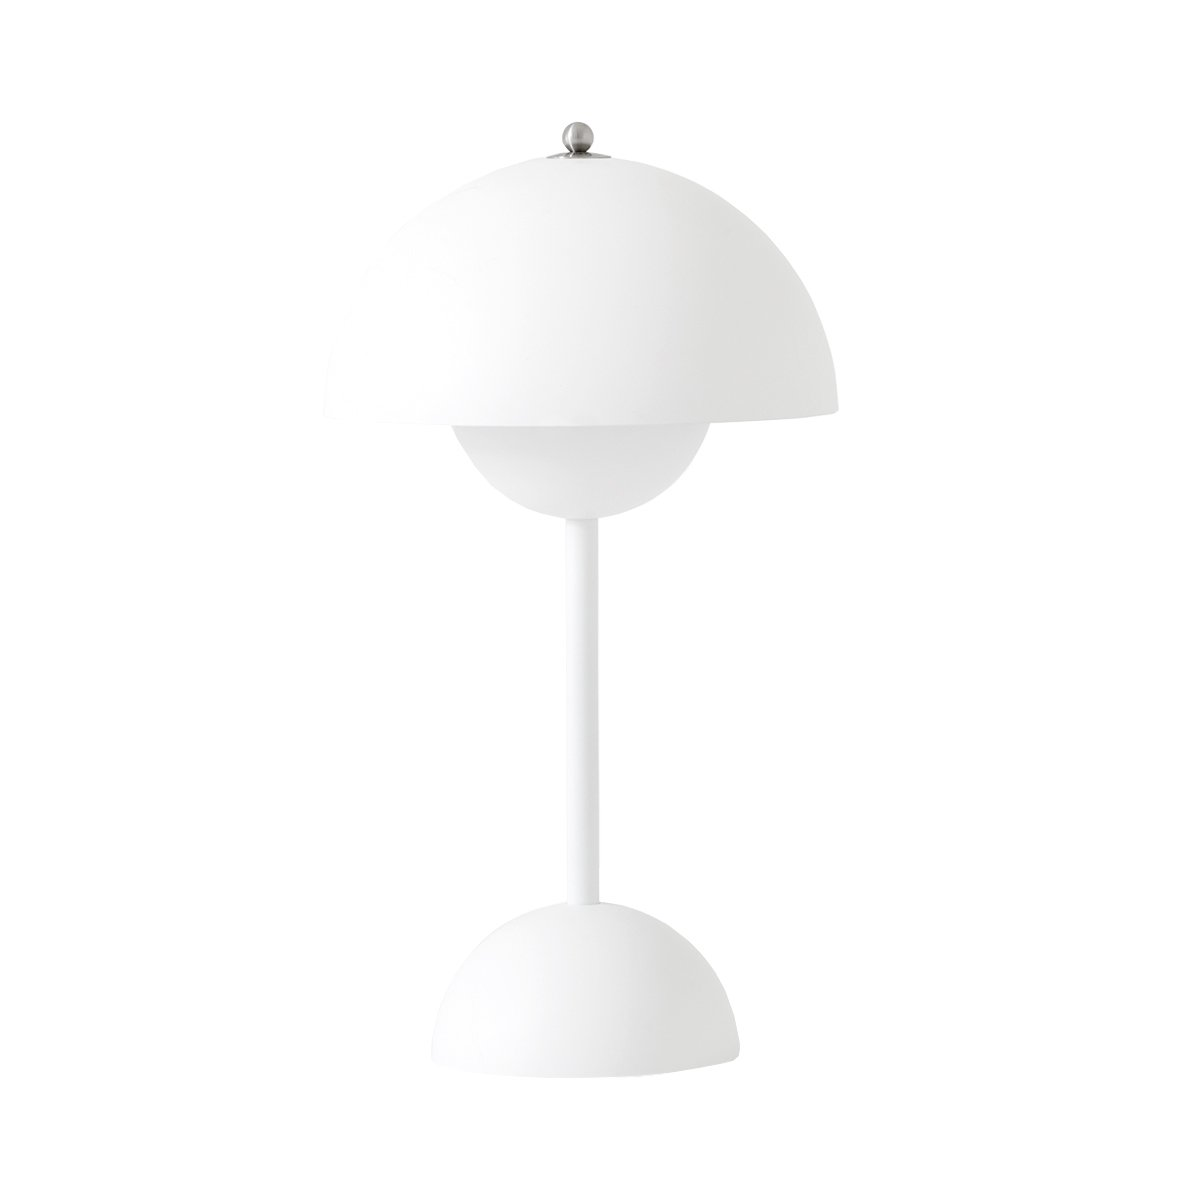 &Tradition Flowerpot VP9 Draagbare Lamp - Mat Wit